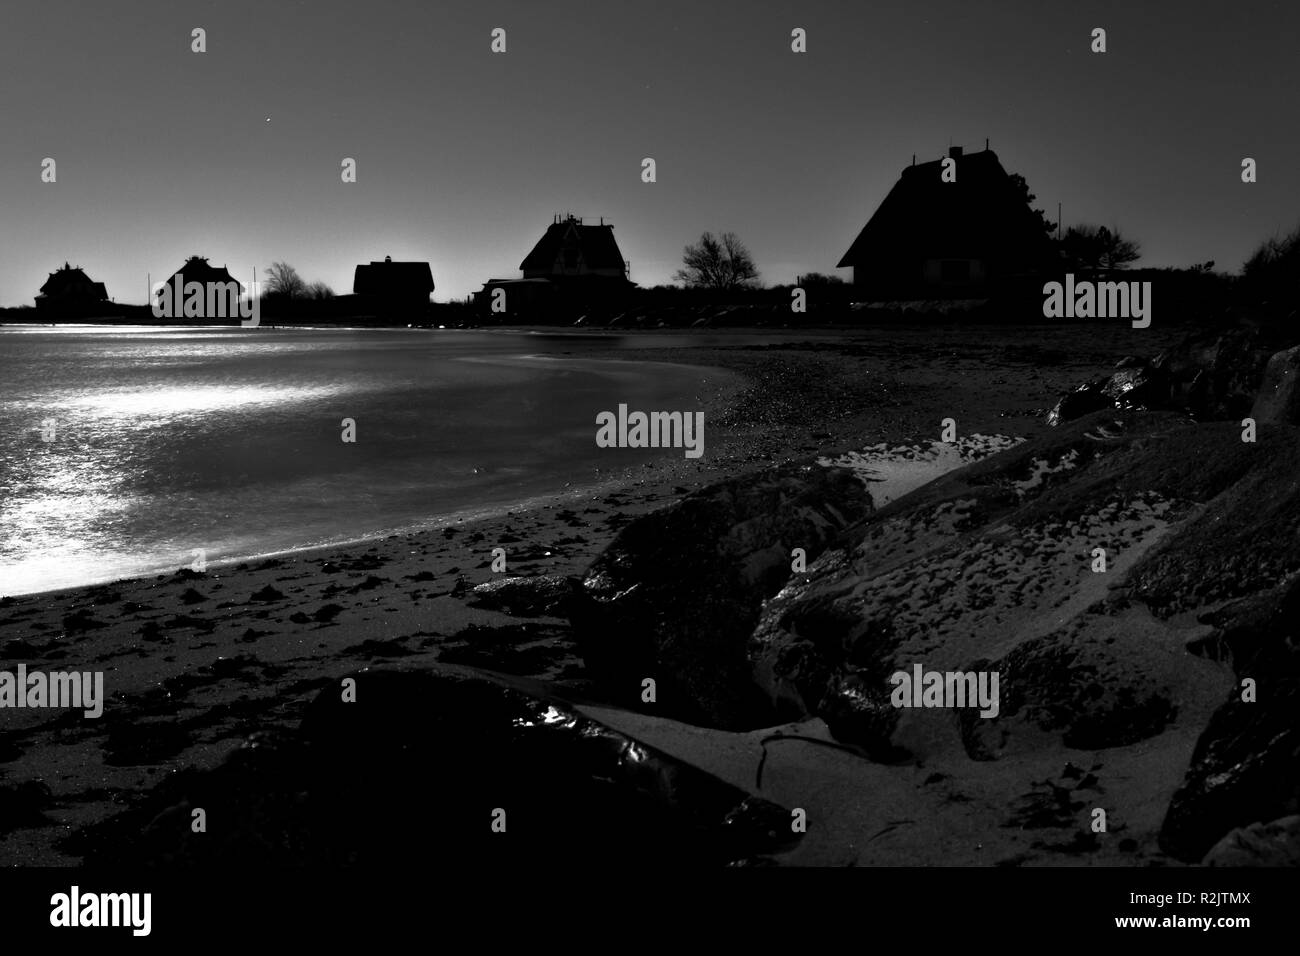 Full moon night over Graswarder, Heiligenhafen - Stock Image